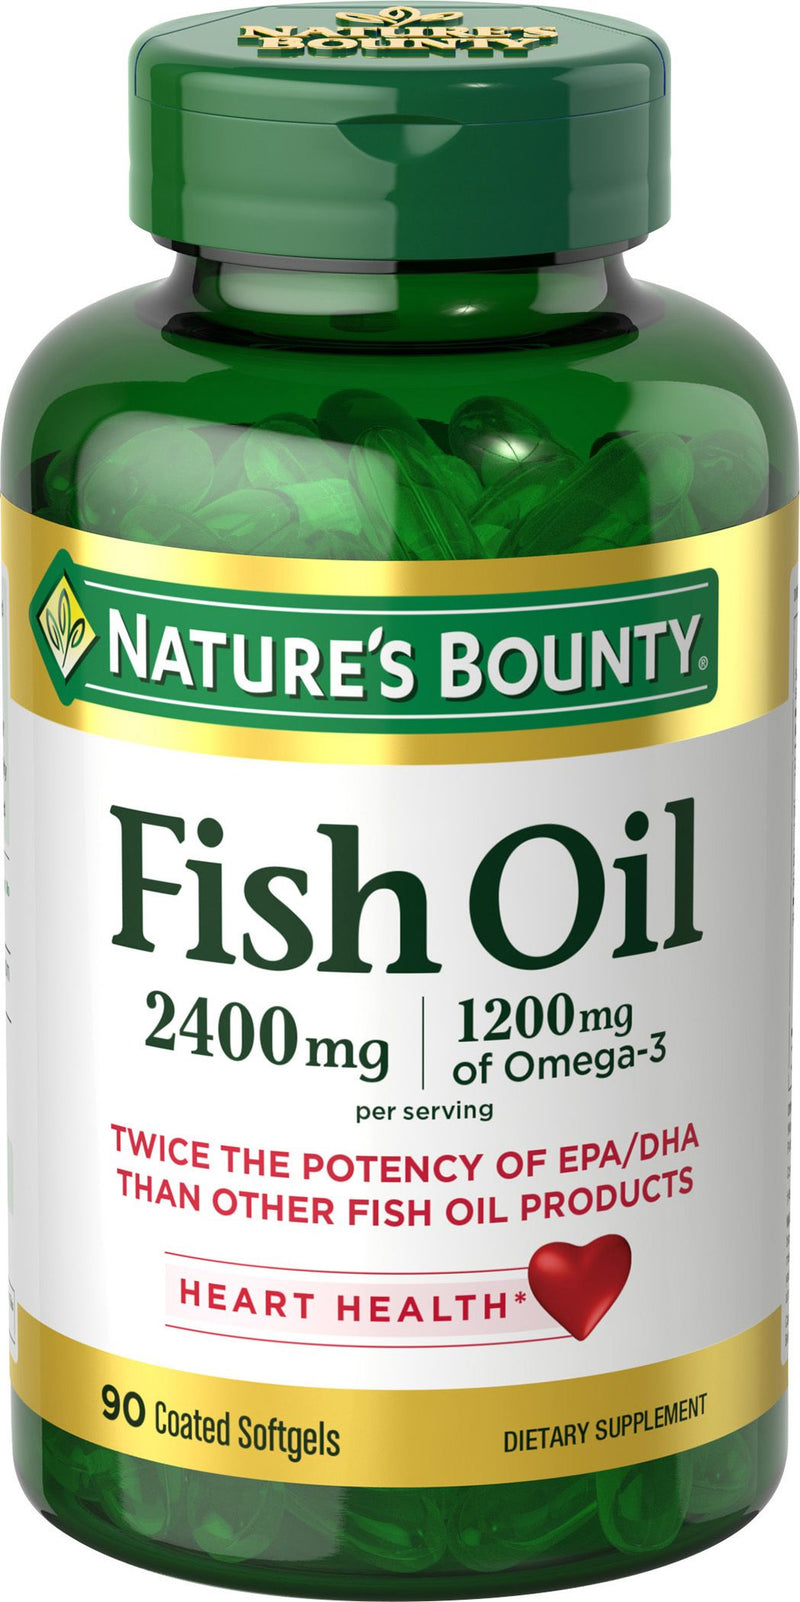 NATURE'S BOUNTY, DBL STR ODORLESS FISH OIL, 90's 90's